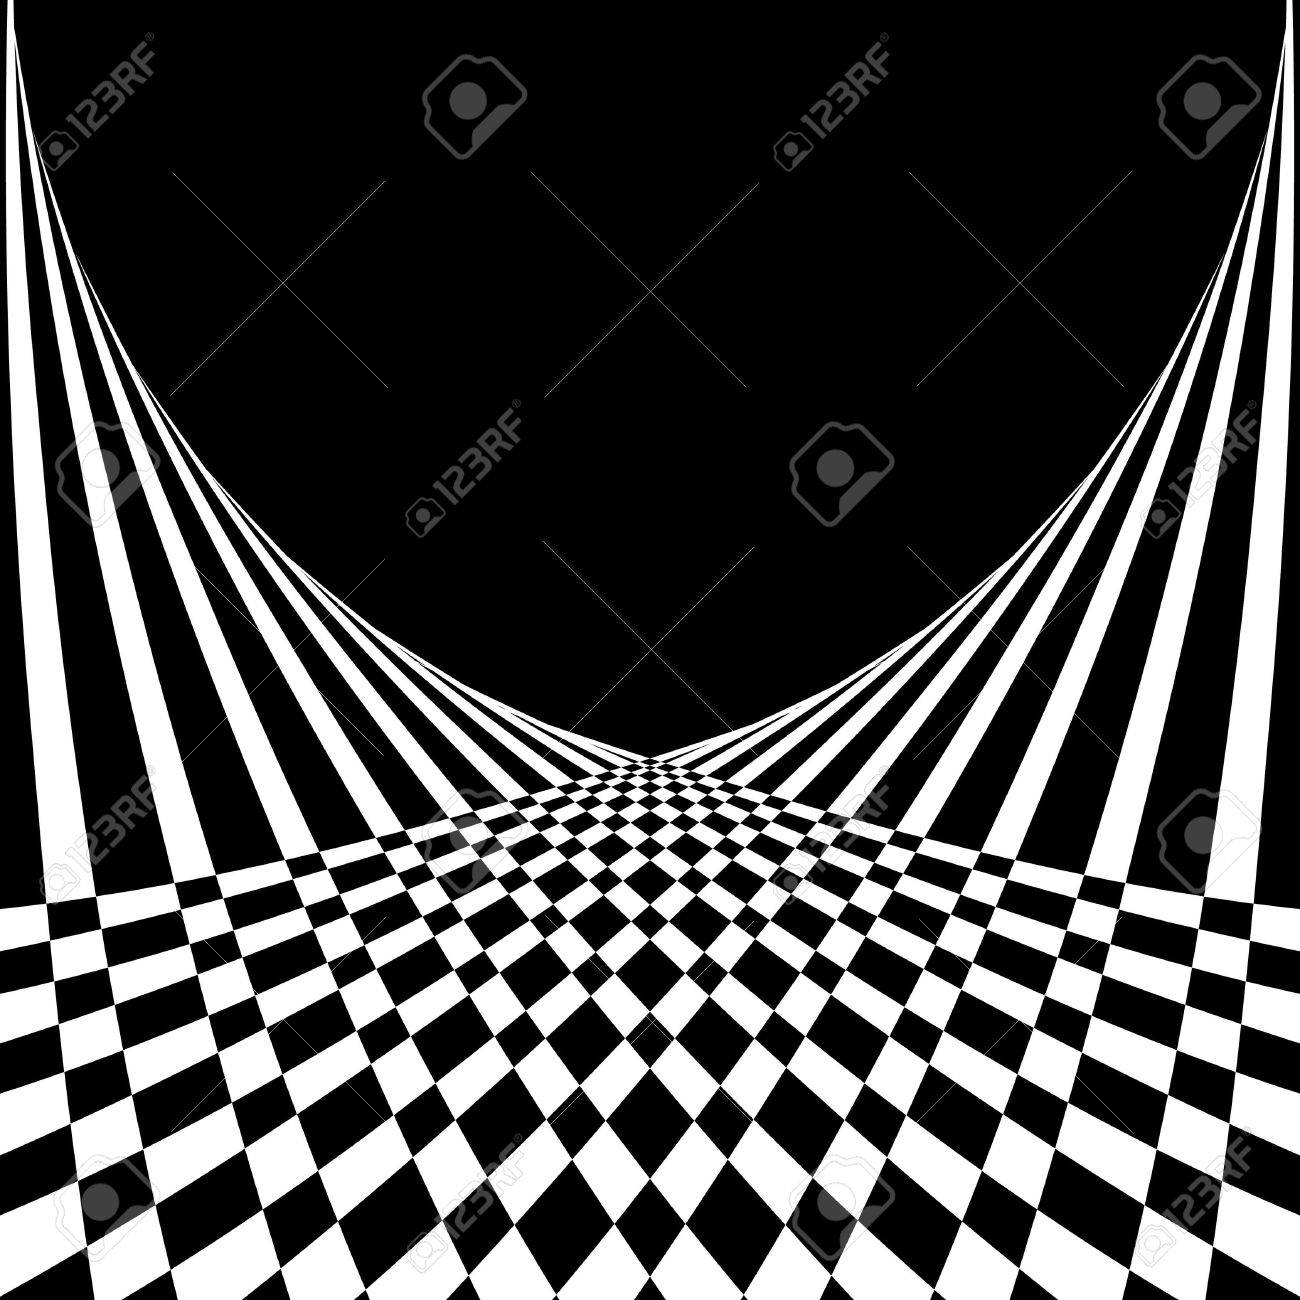 Optical illusion. Abstract background in op art style. Vector illustration. - 12927316